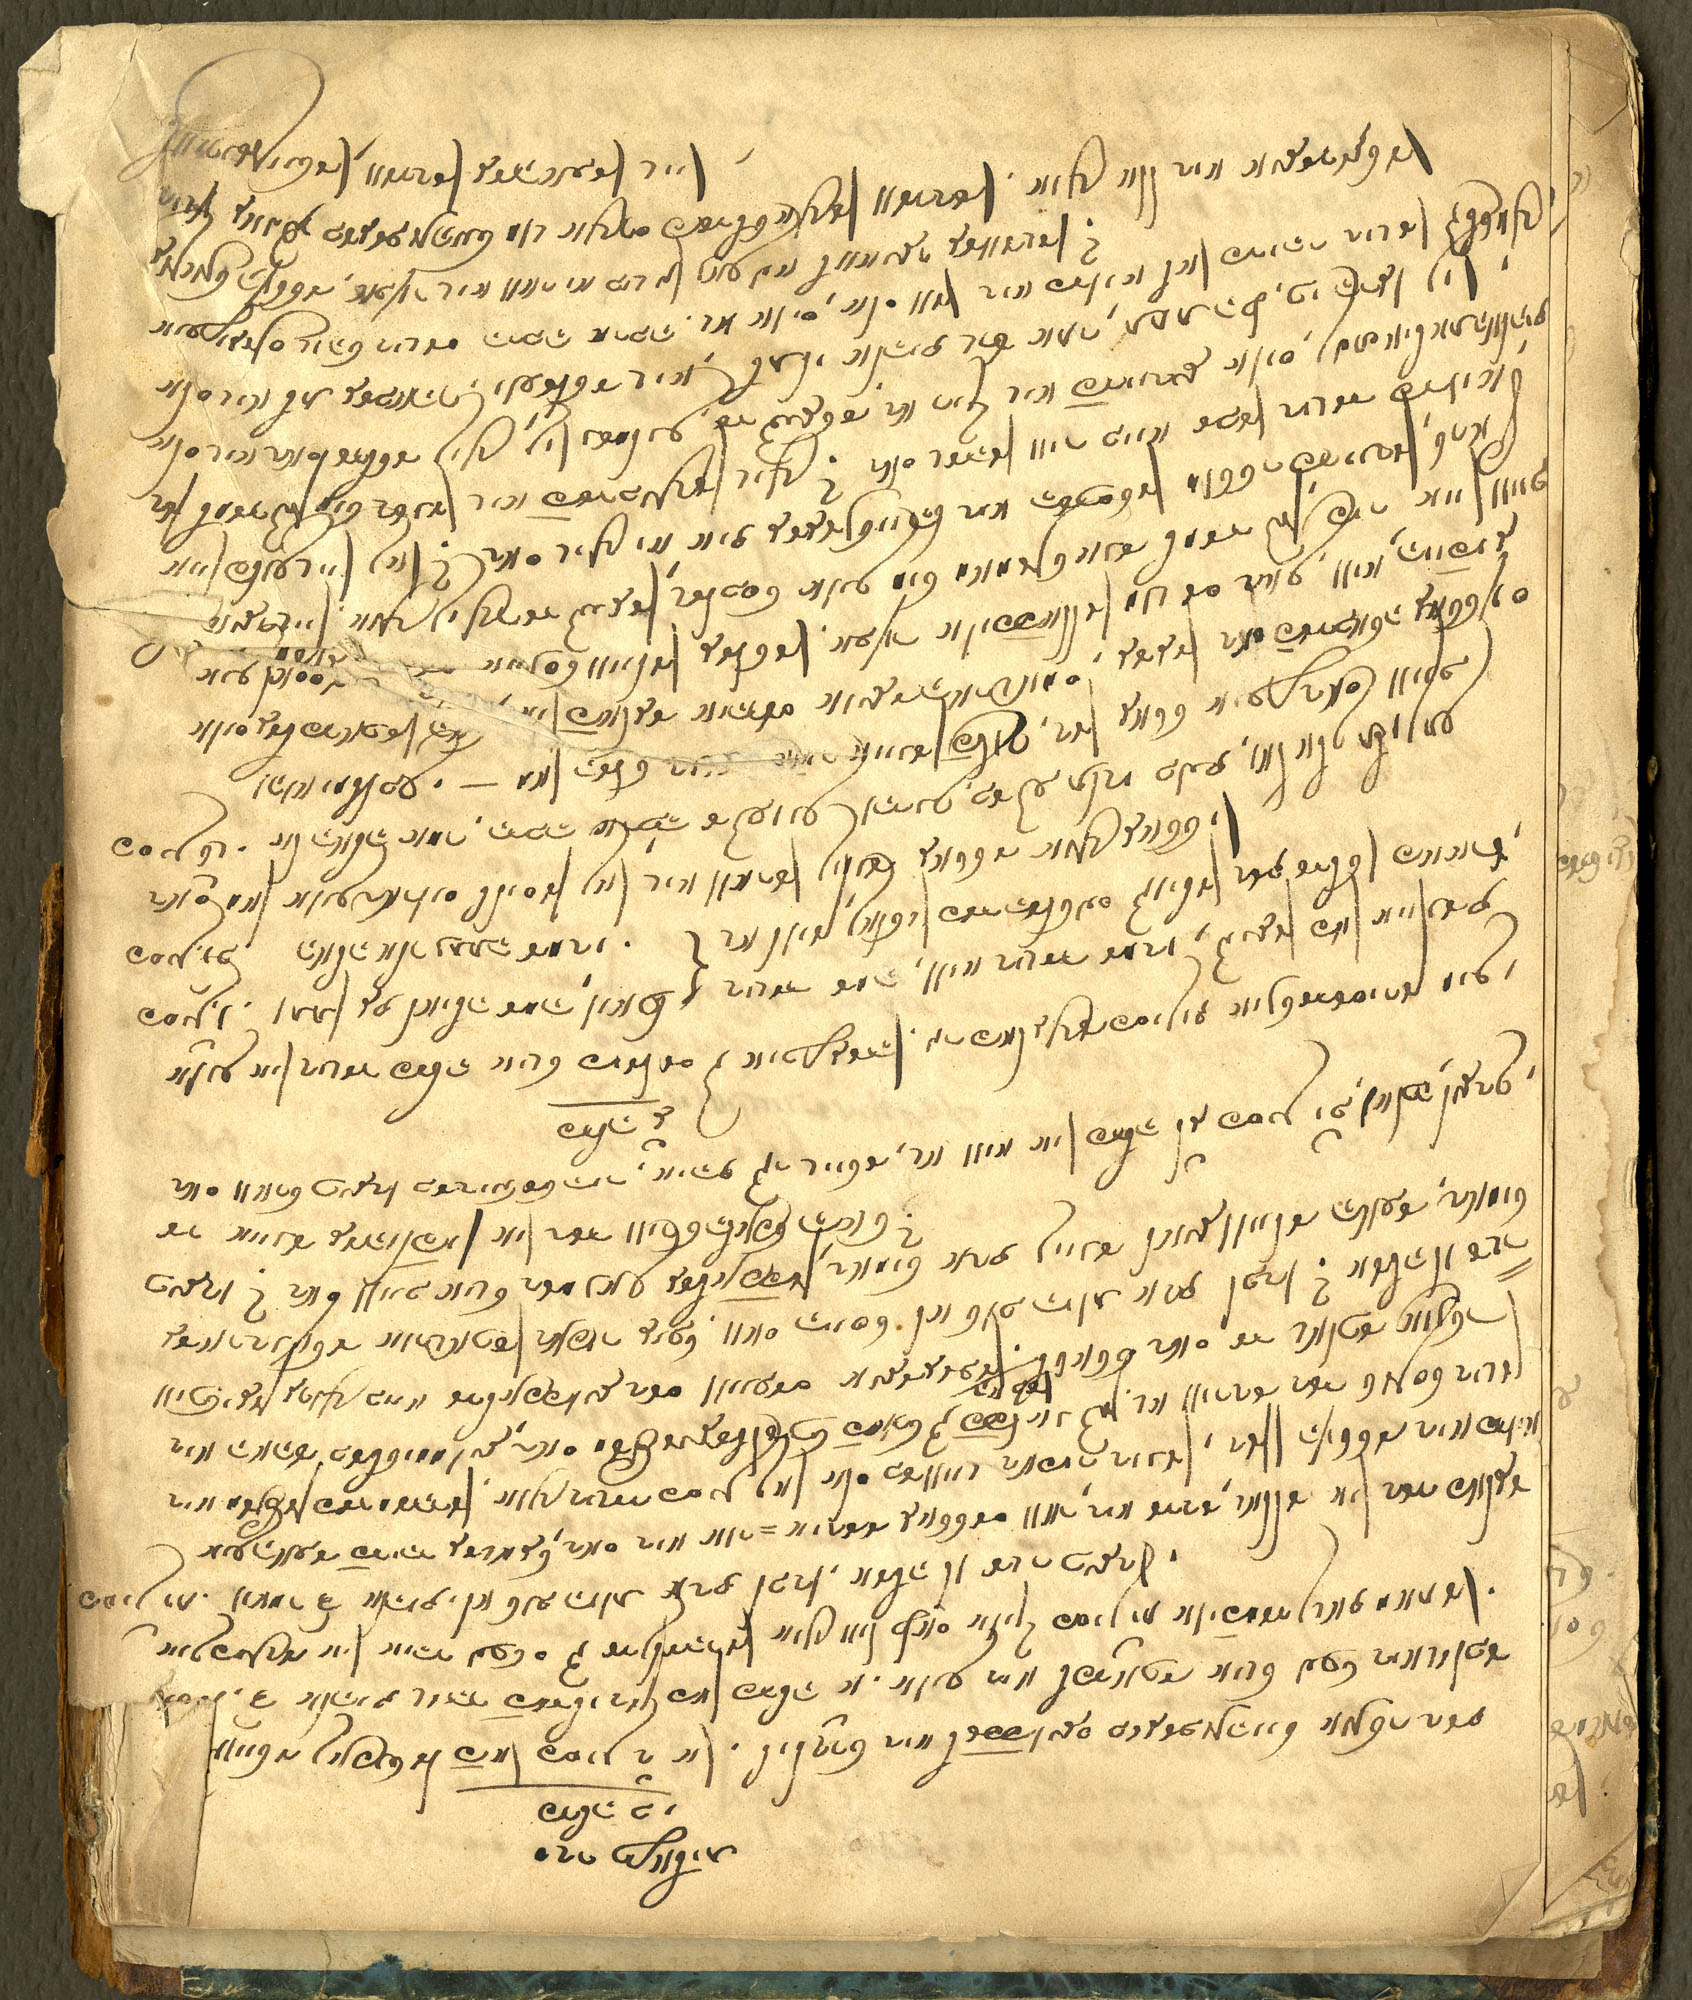 Gustave M. Pollitzer's prayer book in Yiddish